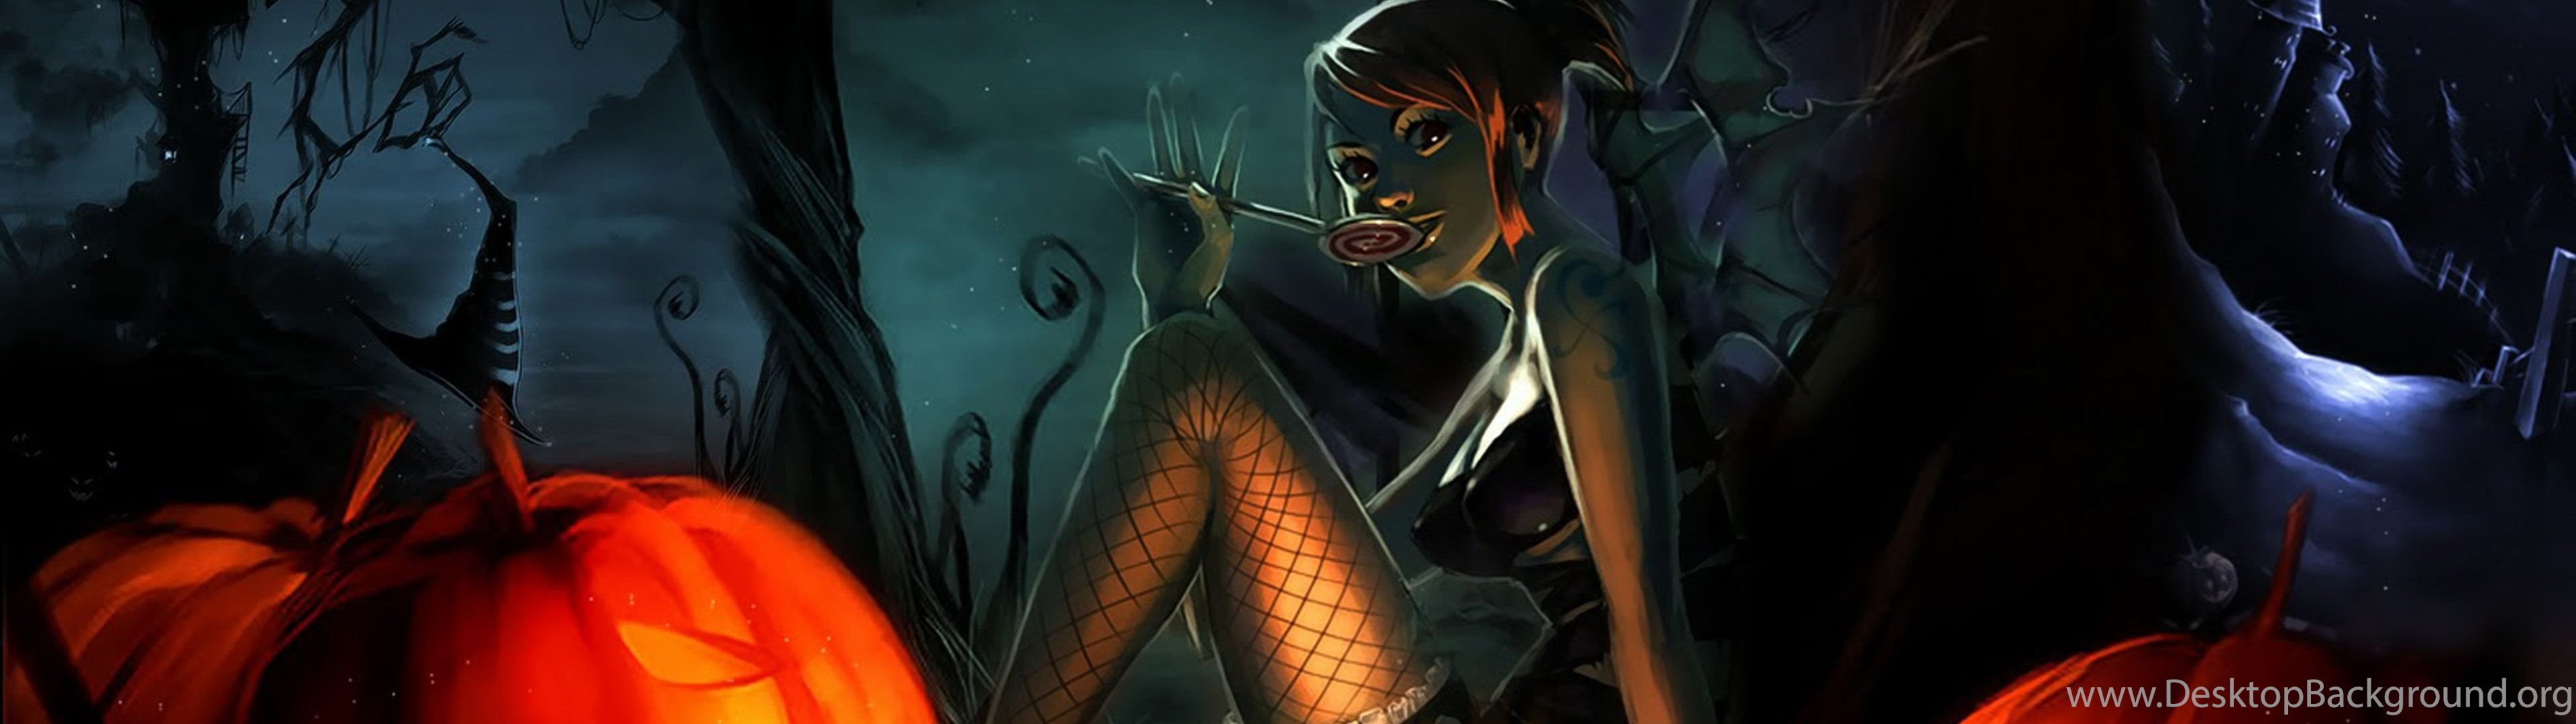 Cartoon Ultra Hd 4k Wallpapers With Resolution Of 3840x2160 For